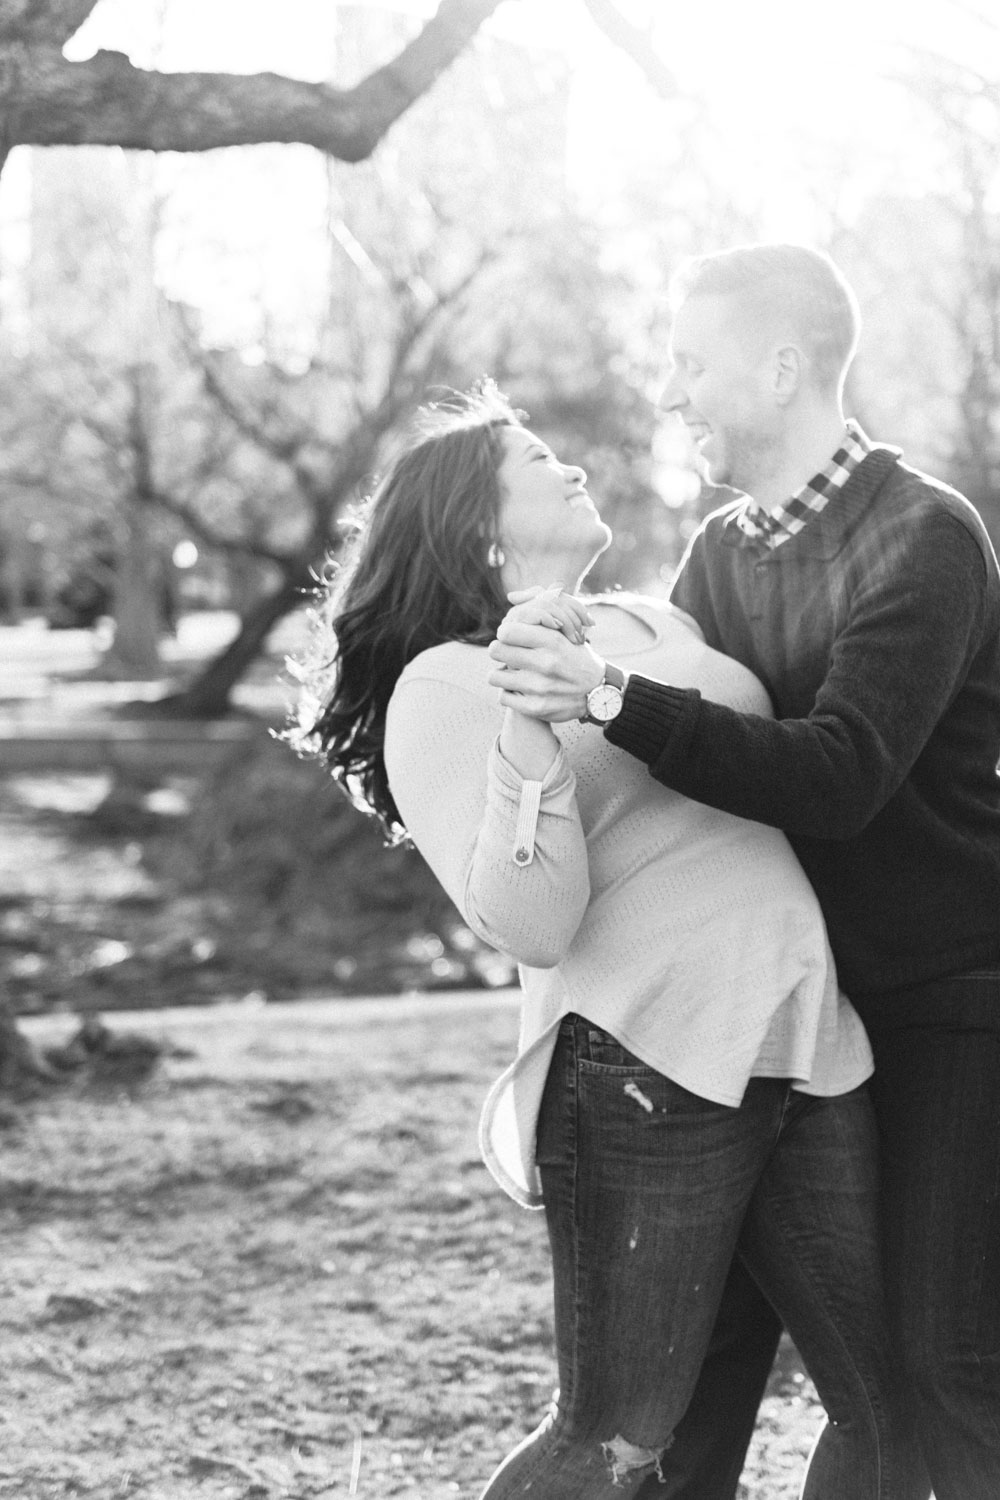 Andrea + Scott | Dog Lovers Boston Public Garden Casual Spring Sunrise Creative Alternative Organic Romantic Engagement Session | Boston and New England Engagement Photography | Lorna Stell Photo